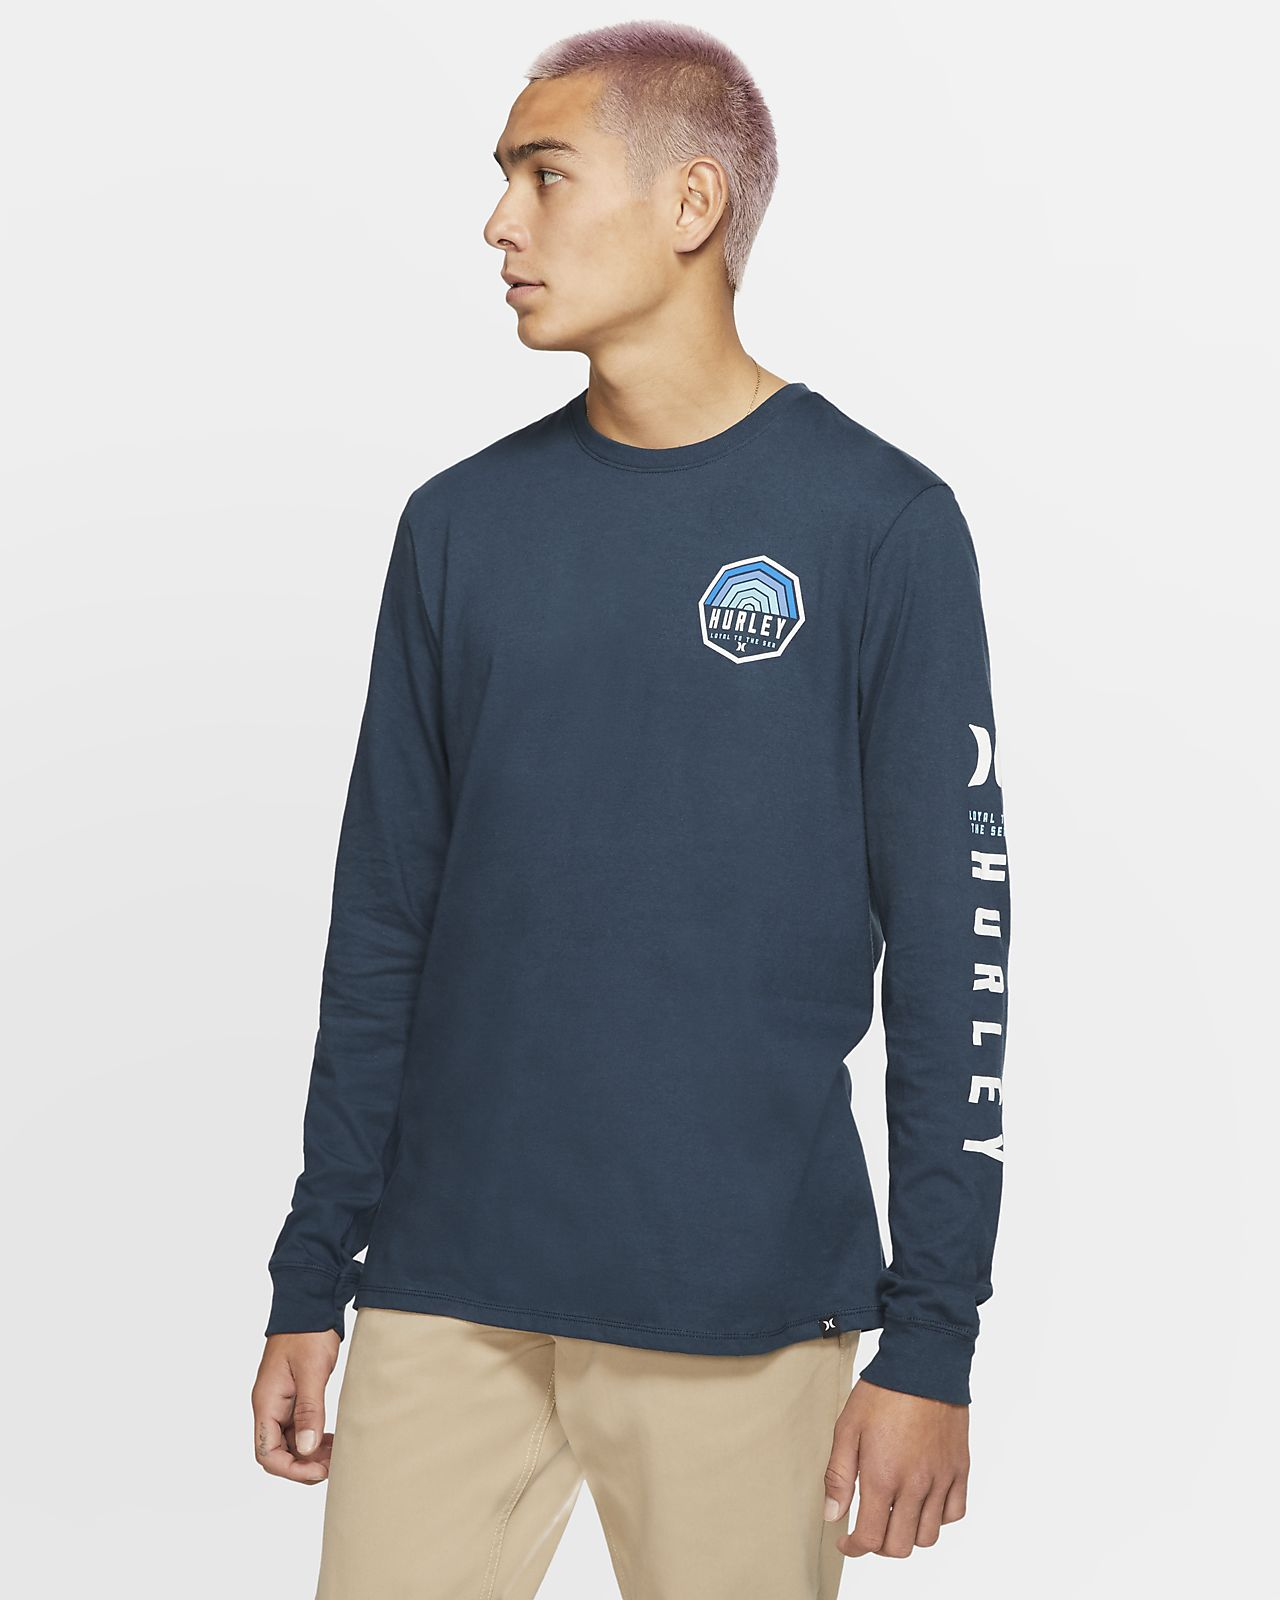 Hurley Premium Hexer Men's Long-Sleeve T-Shirt